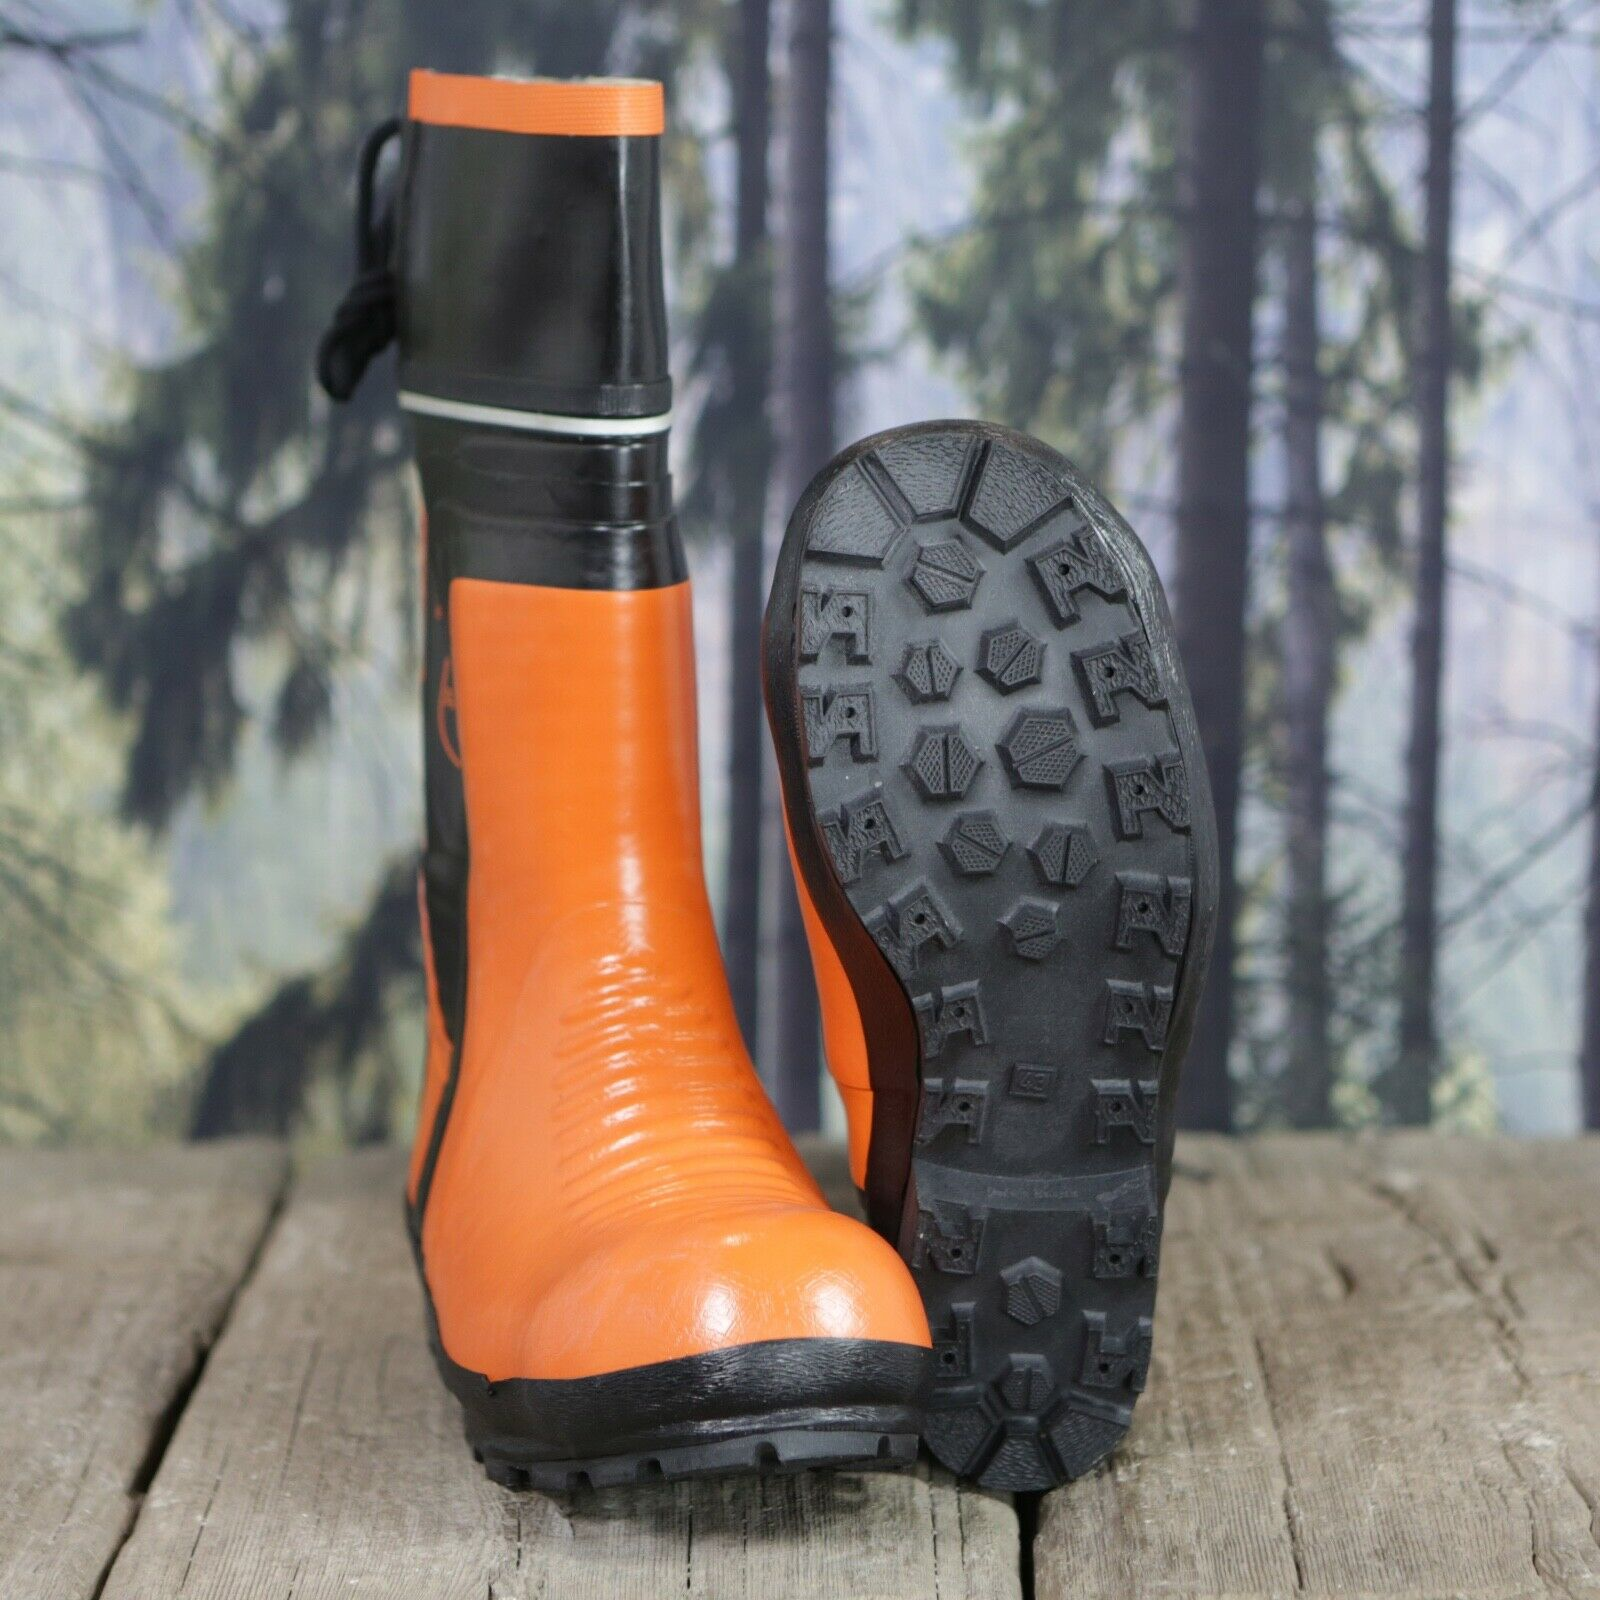 De-Branded Steel Toe Cap Chainsaw Class 3 Wellington Boots EU43 UK9 HKV1782